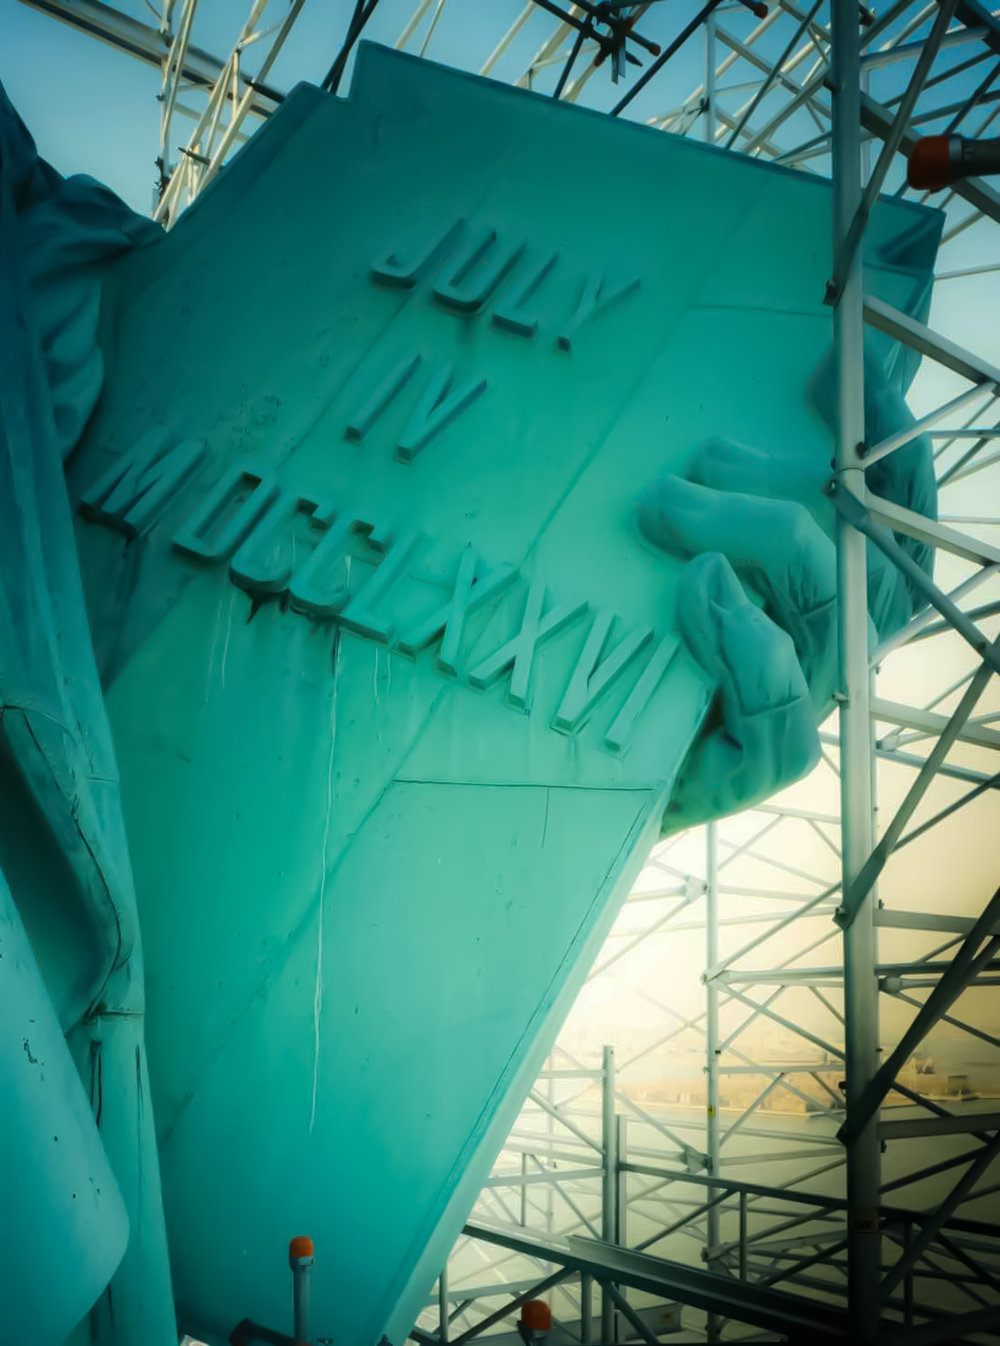 statue-of-liberty-piccola-new-yorker-freedom.jpg